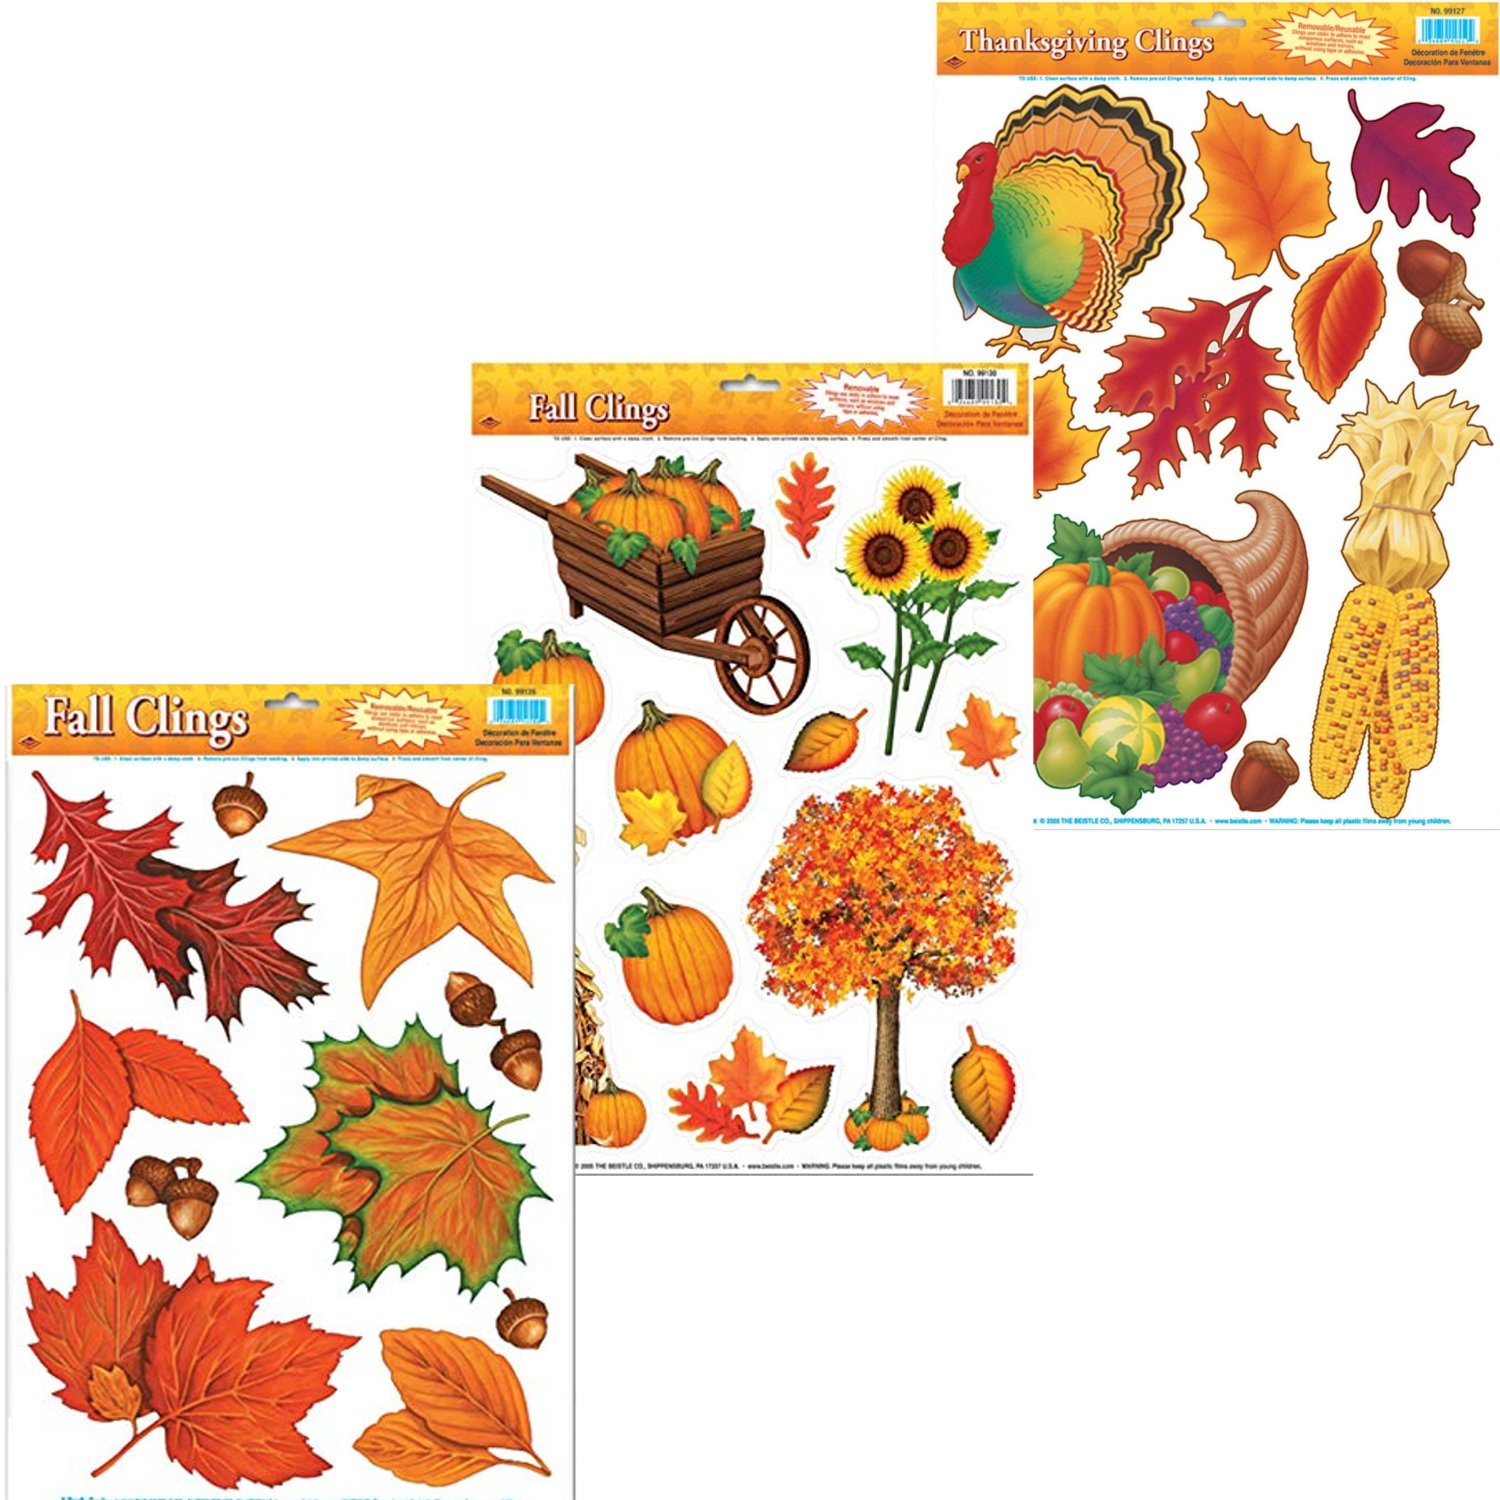 Curated Nirvana Autumn & Thanksgiving Holiday Window Clings | Seasonal Static Decals Featuring Fall Leaves and Acorns, Harvest Time Pumpkins, Indian Corn, Turkey, Cornucopia and More - 33 Total